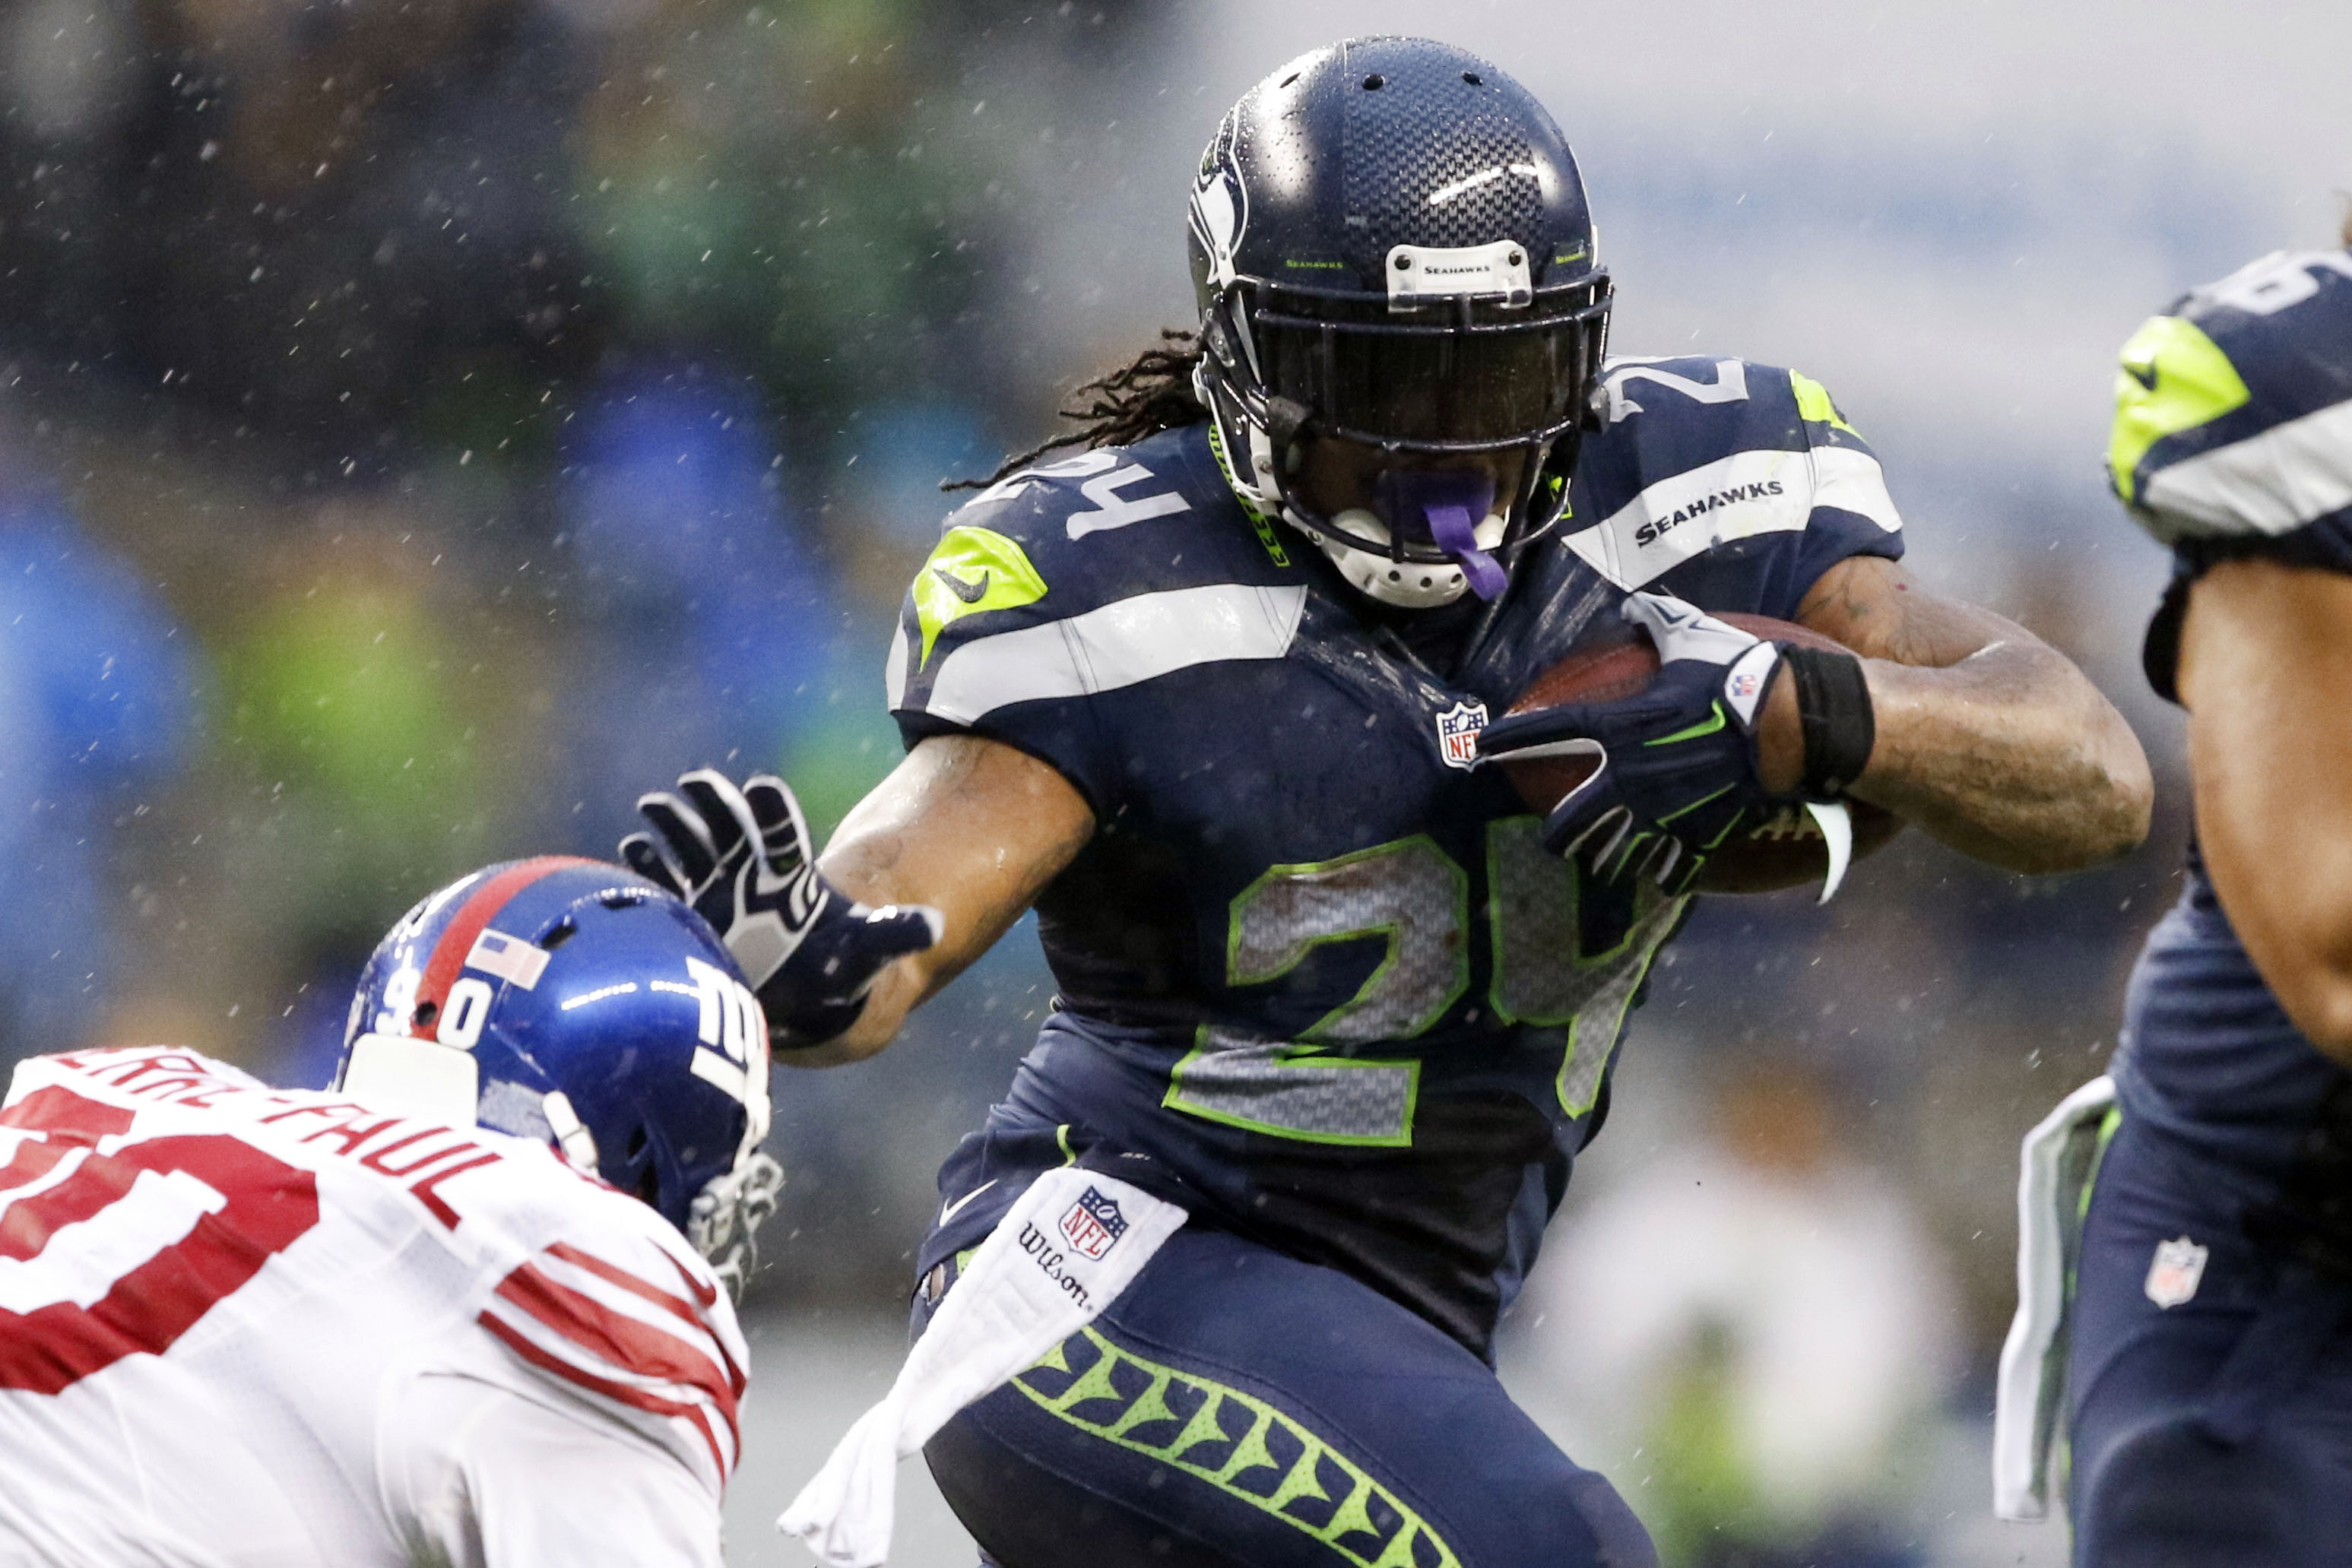 Nfl York Giants Seattle Seahawks Oakland Raiders Cinci Reasons Marshawn Lynch Missing Piece